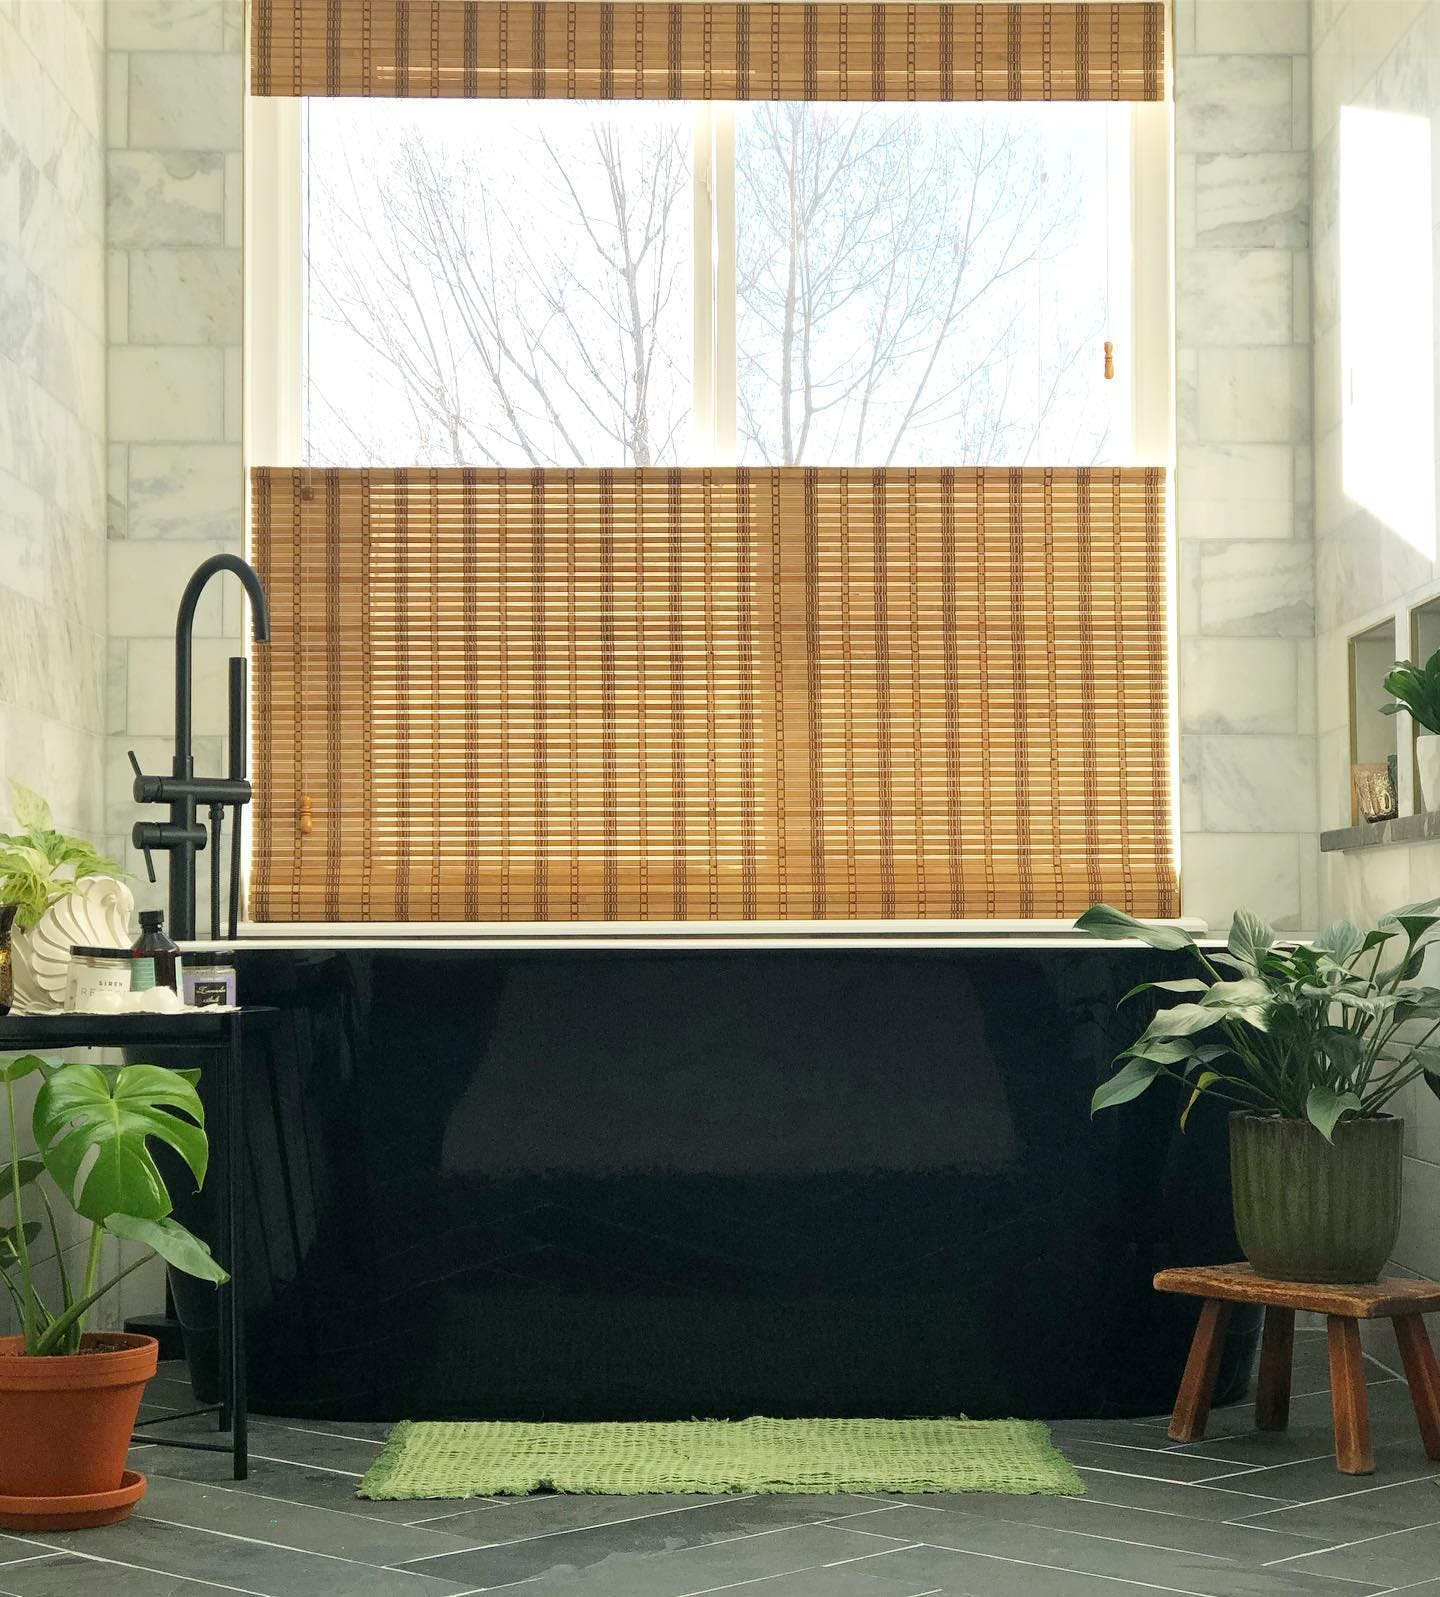 Large, black, free standing tub next to a window with a woven wood shades and surrounded by plants.